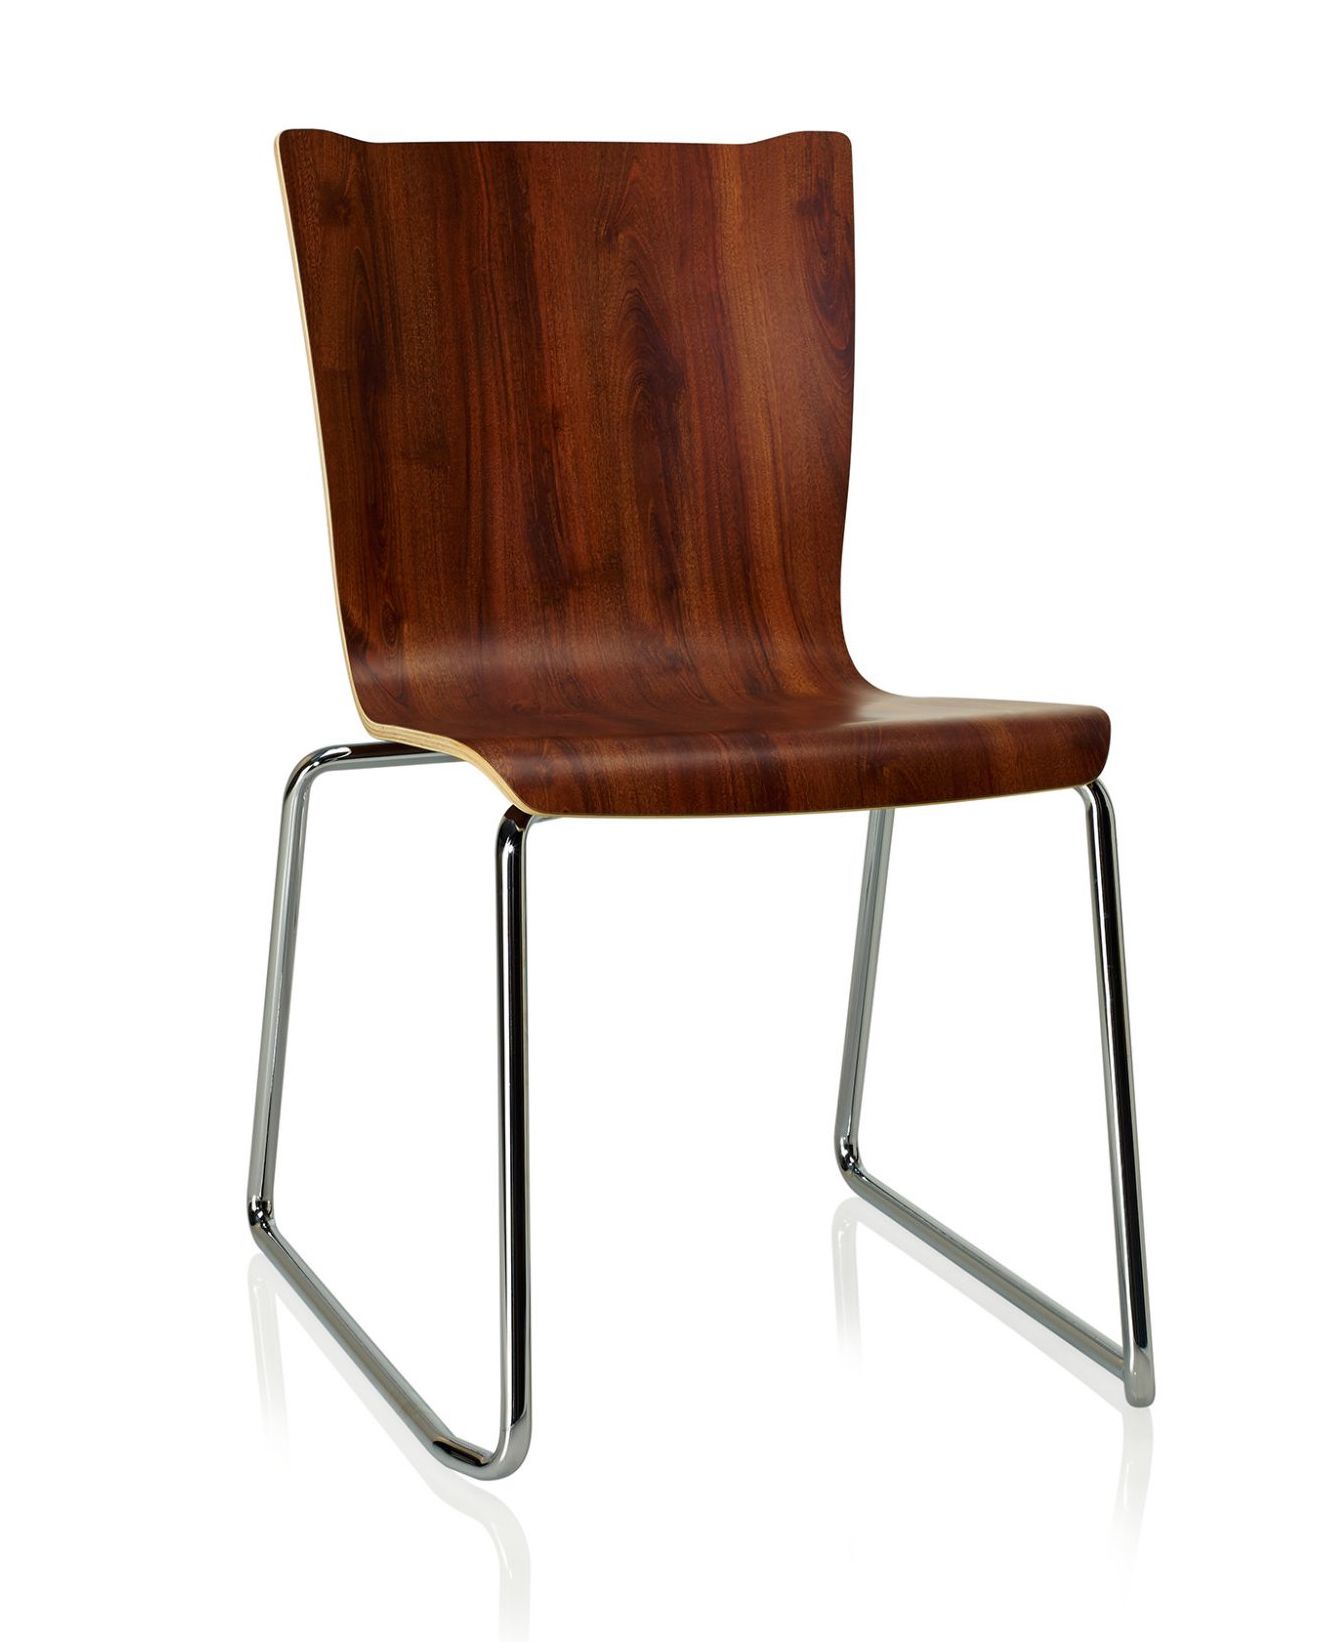 apply wood laminate chair